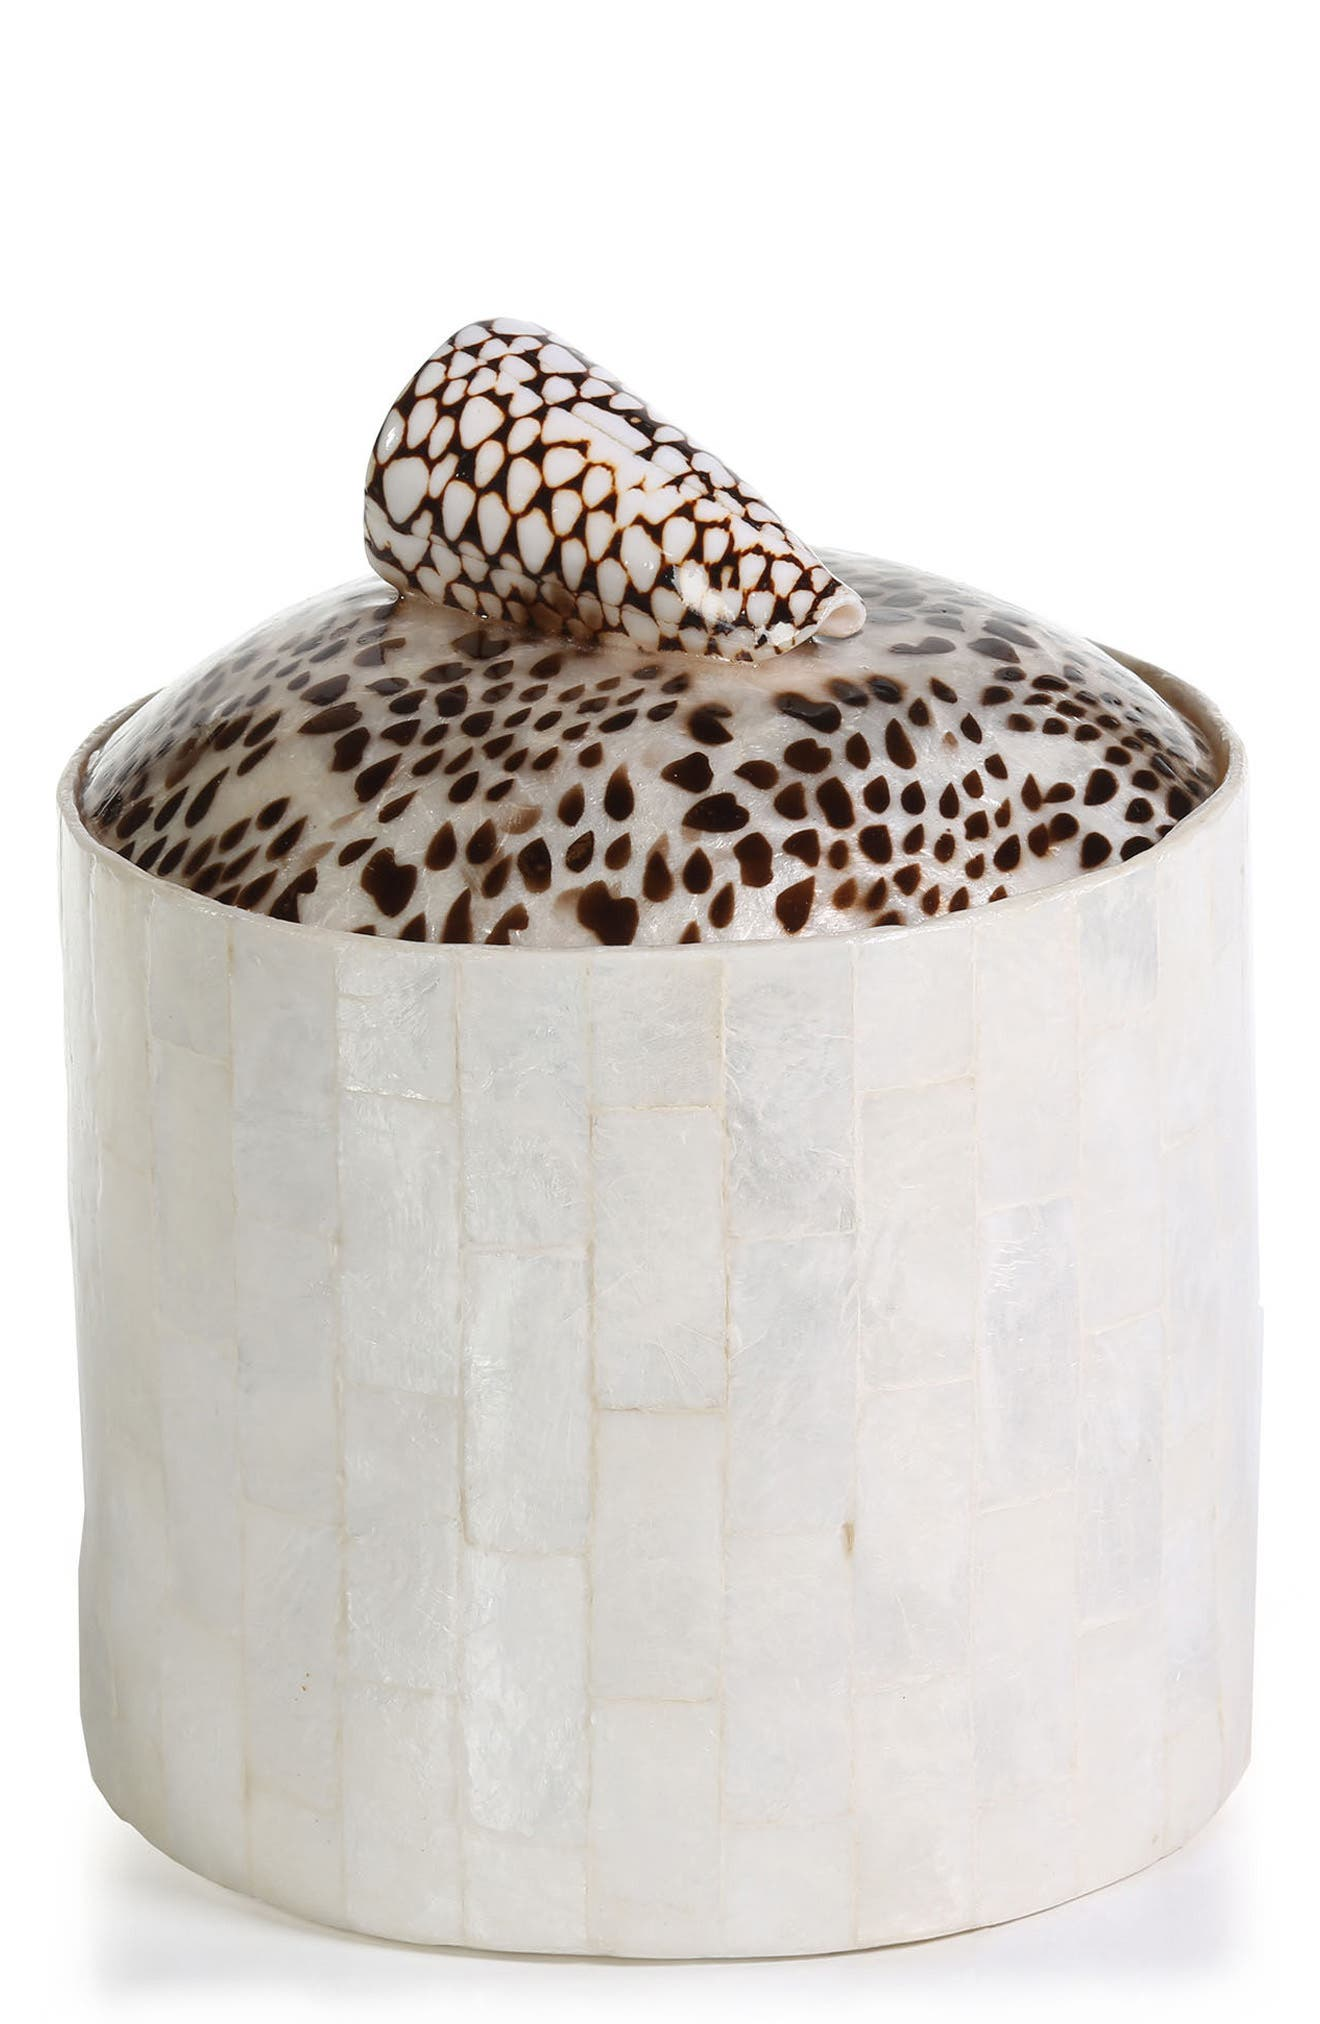 Capiz Shell Ice Bucket,                             Main thumbnail 1, color,                             Off-White/ Brown